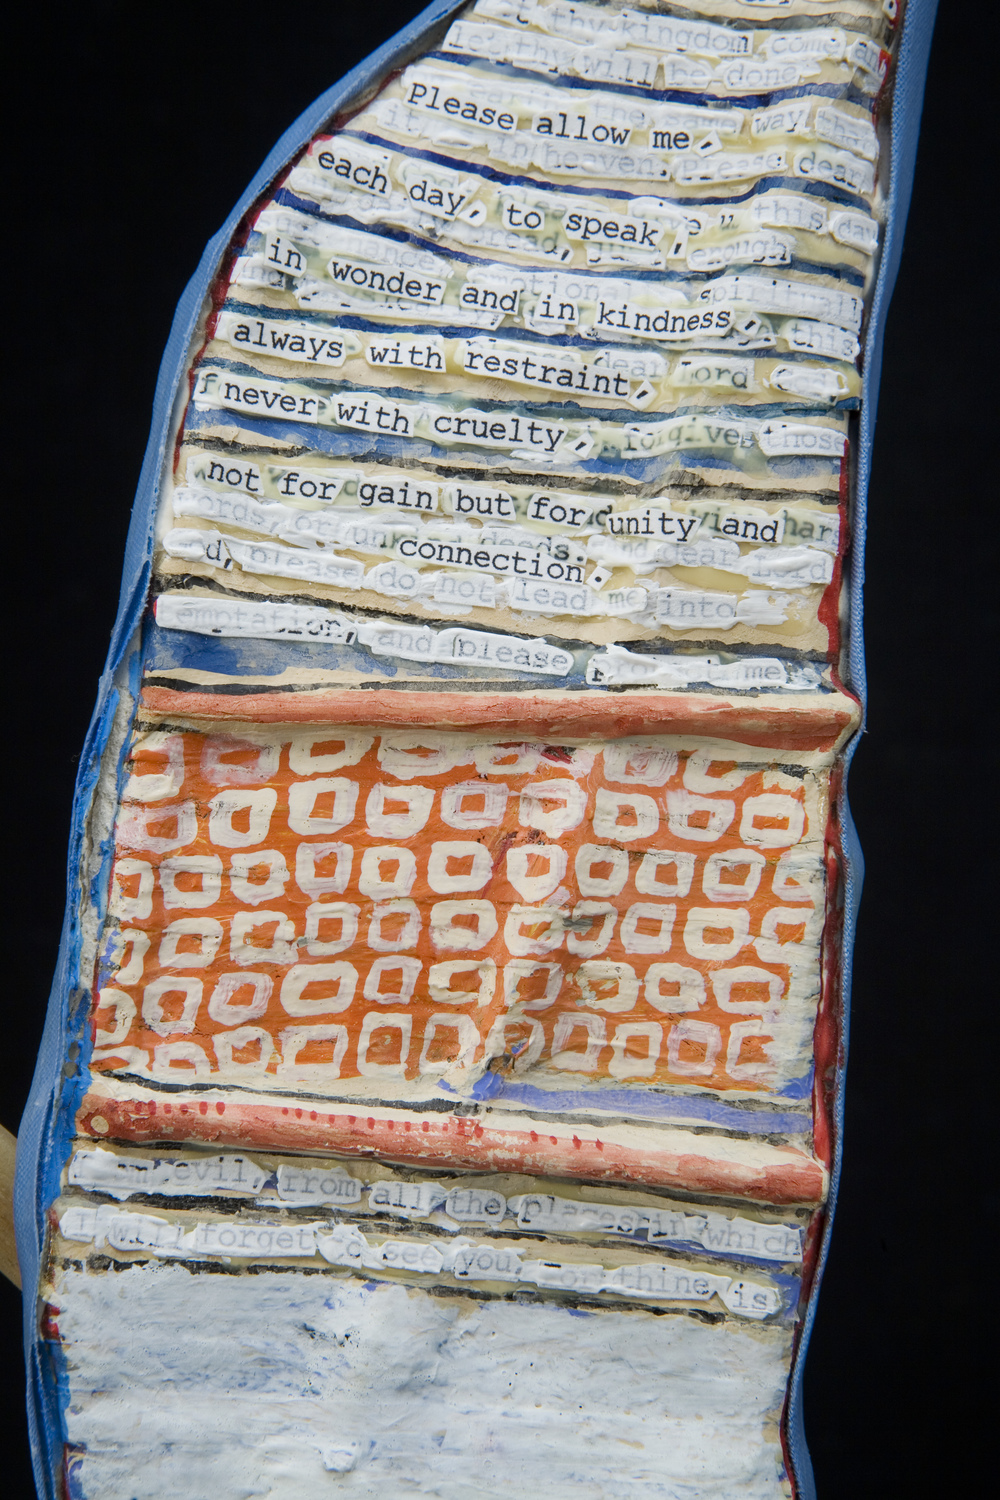 Prayer Paddle: To Speak In Wonder and In Kindness (detail) , mixed media, 16 by 3 inches, 2007-2014.